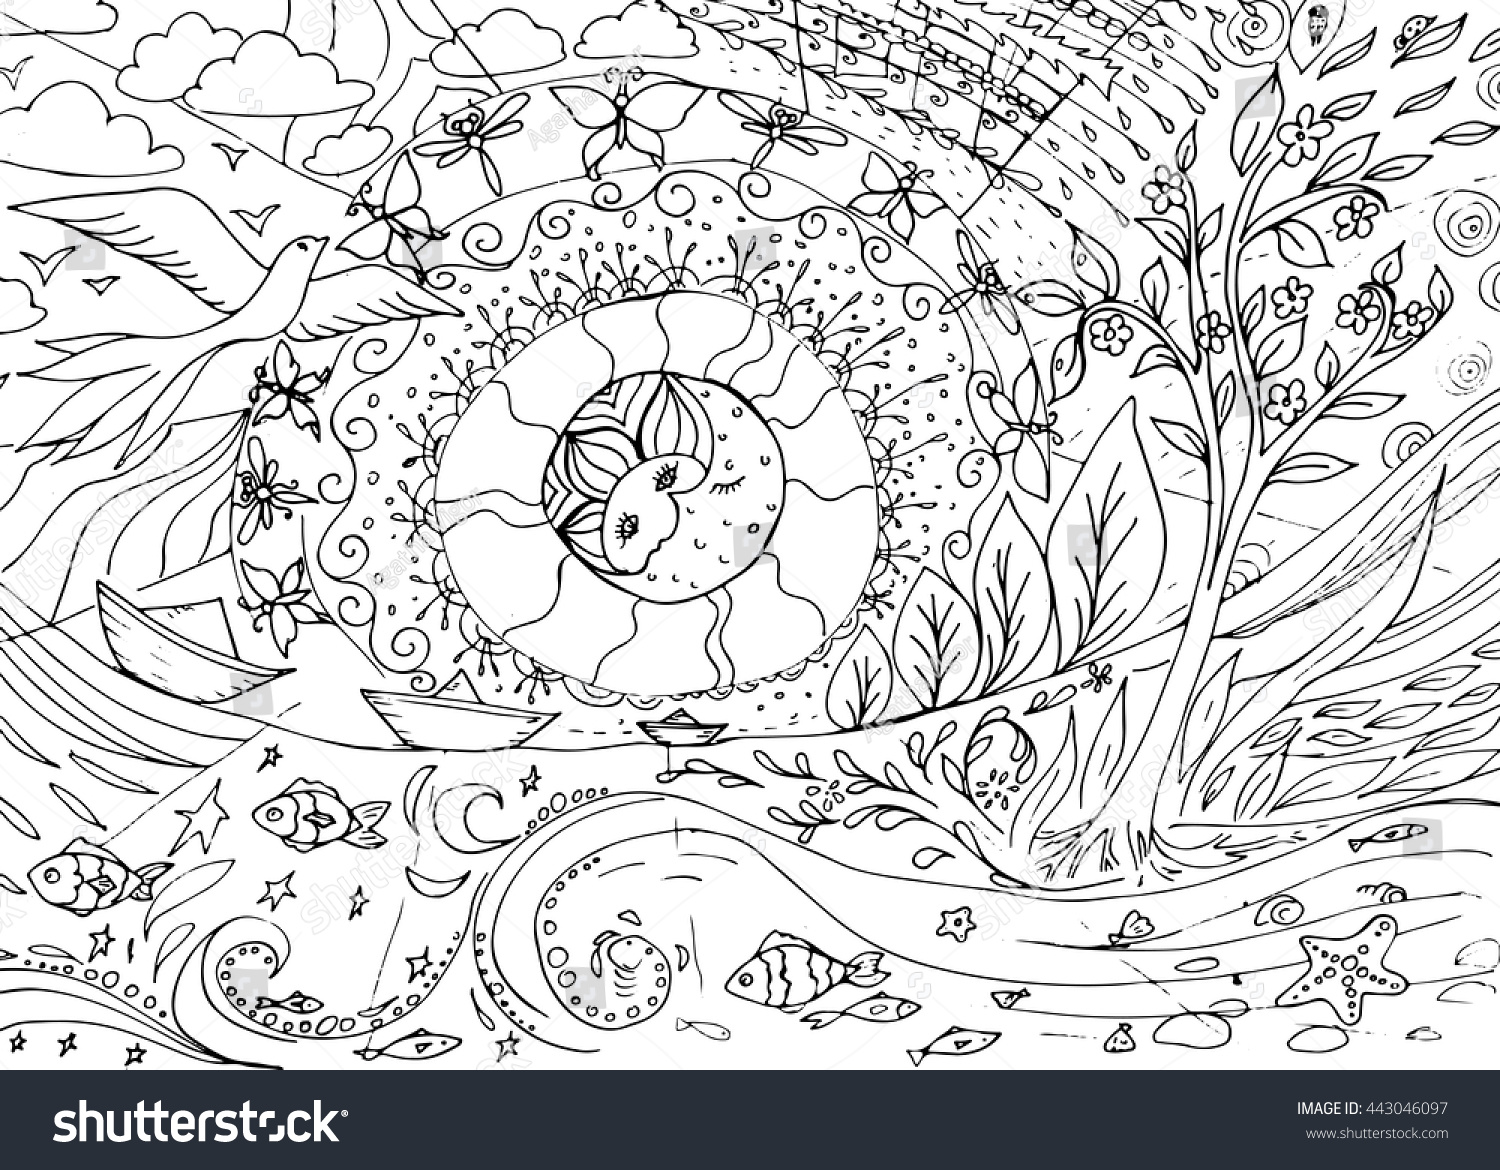 Seasons Day And Night Nature Coloring Book Page For Older Children Adults